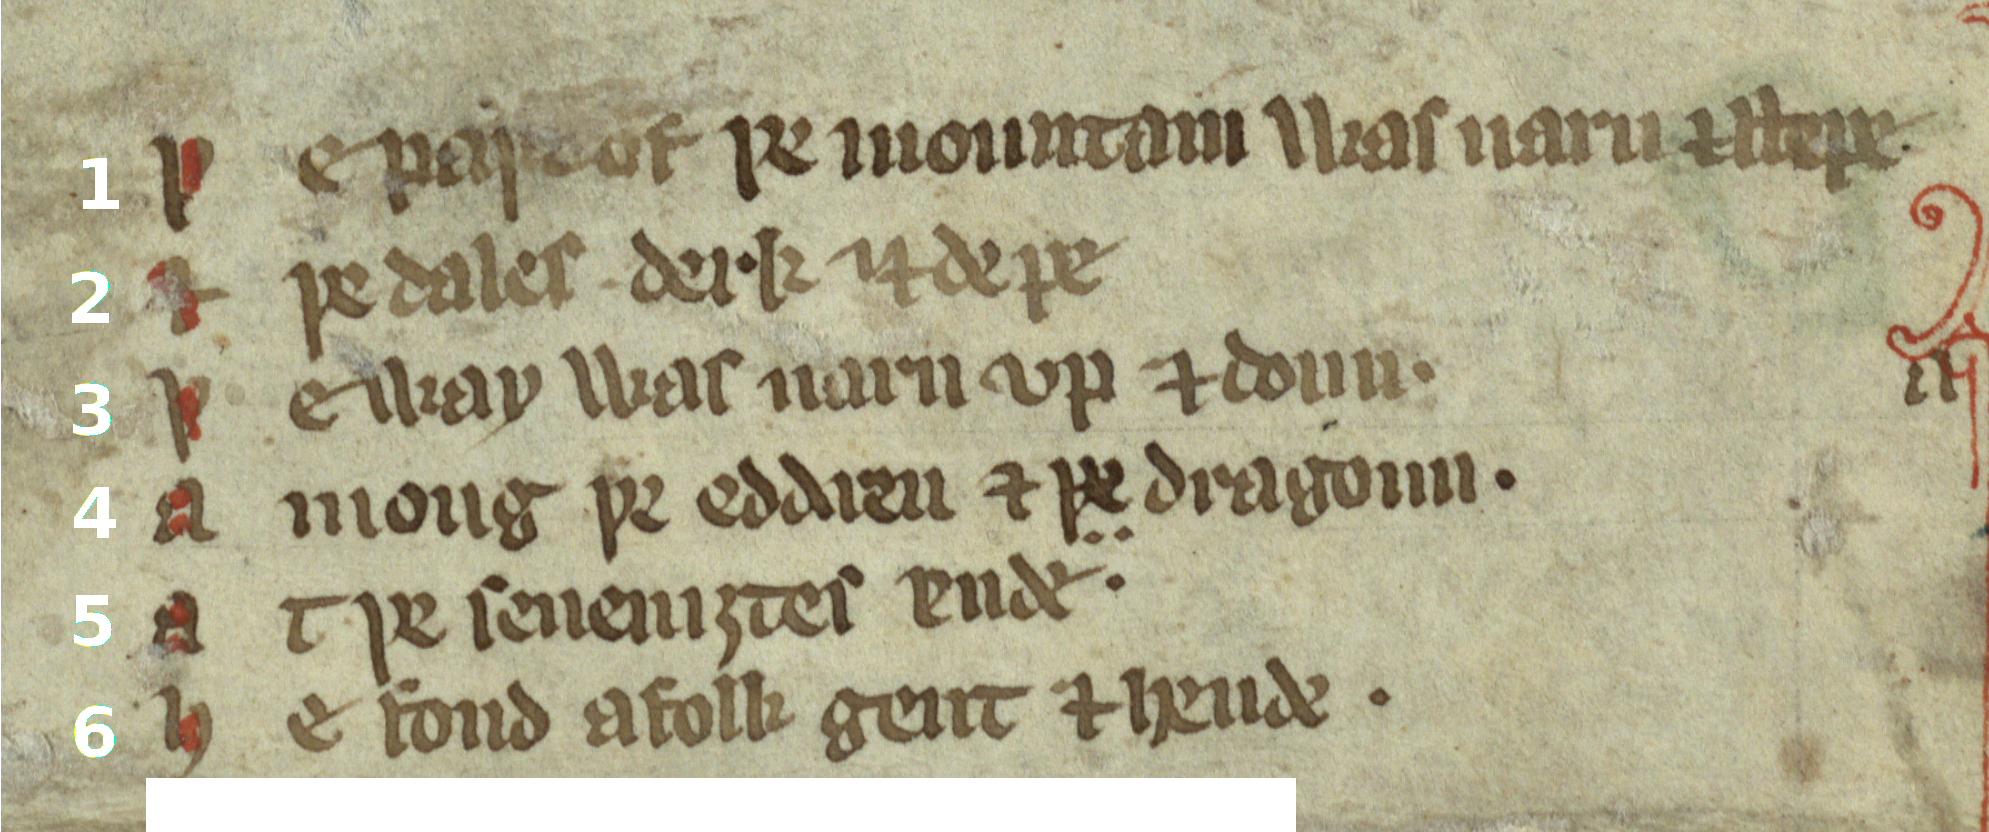 Week 1 pre 15th century book hand read me a self correcting you can find these symbols on the symbols menu in word or simply copy and paste them into your transcription biocorpaavc Gallery